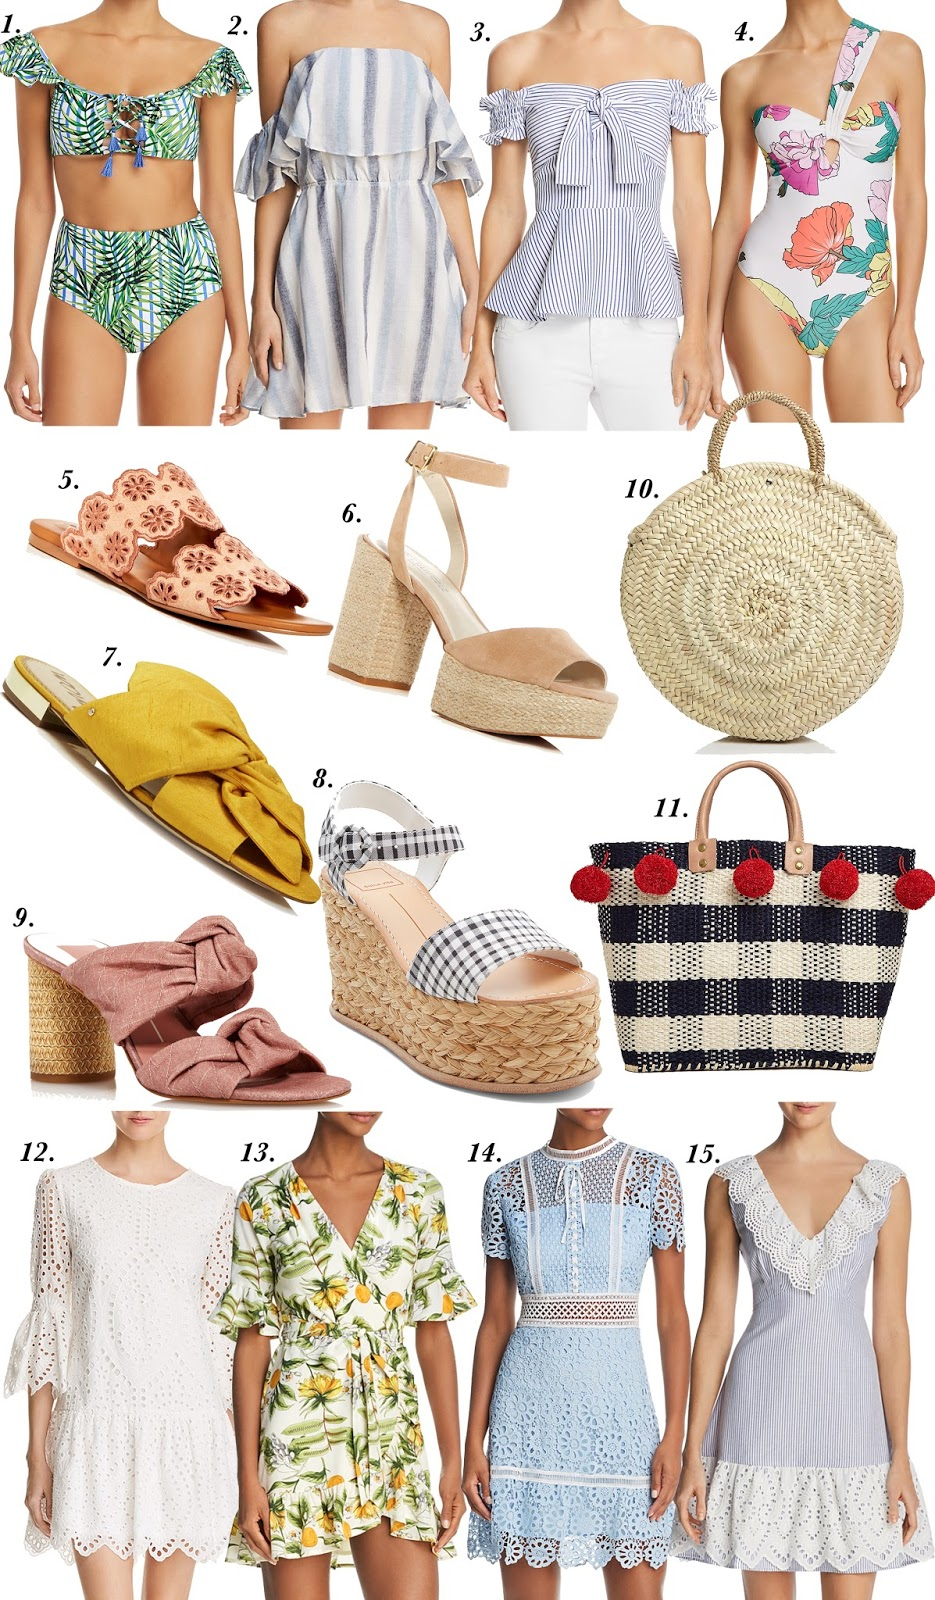 Bloomingdales Friends & Family Sale - Something Delightful Blog